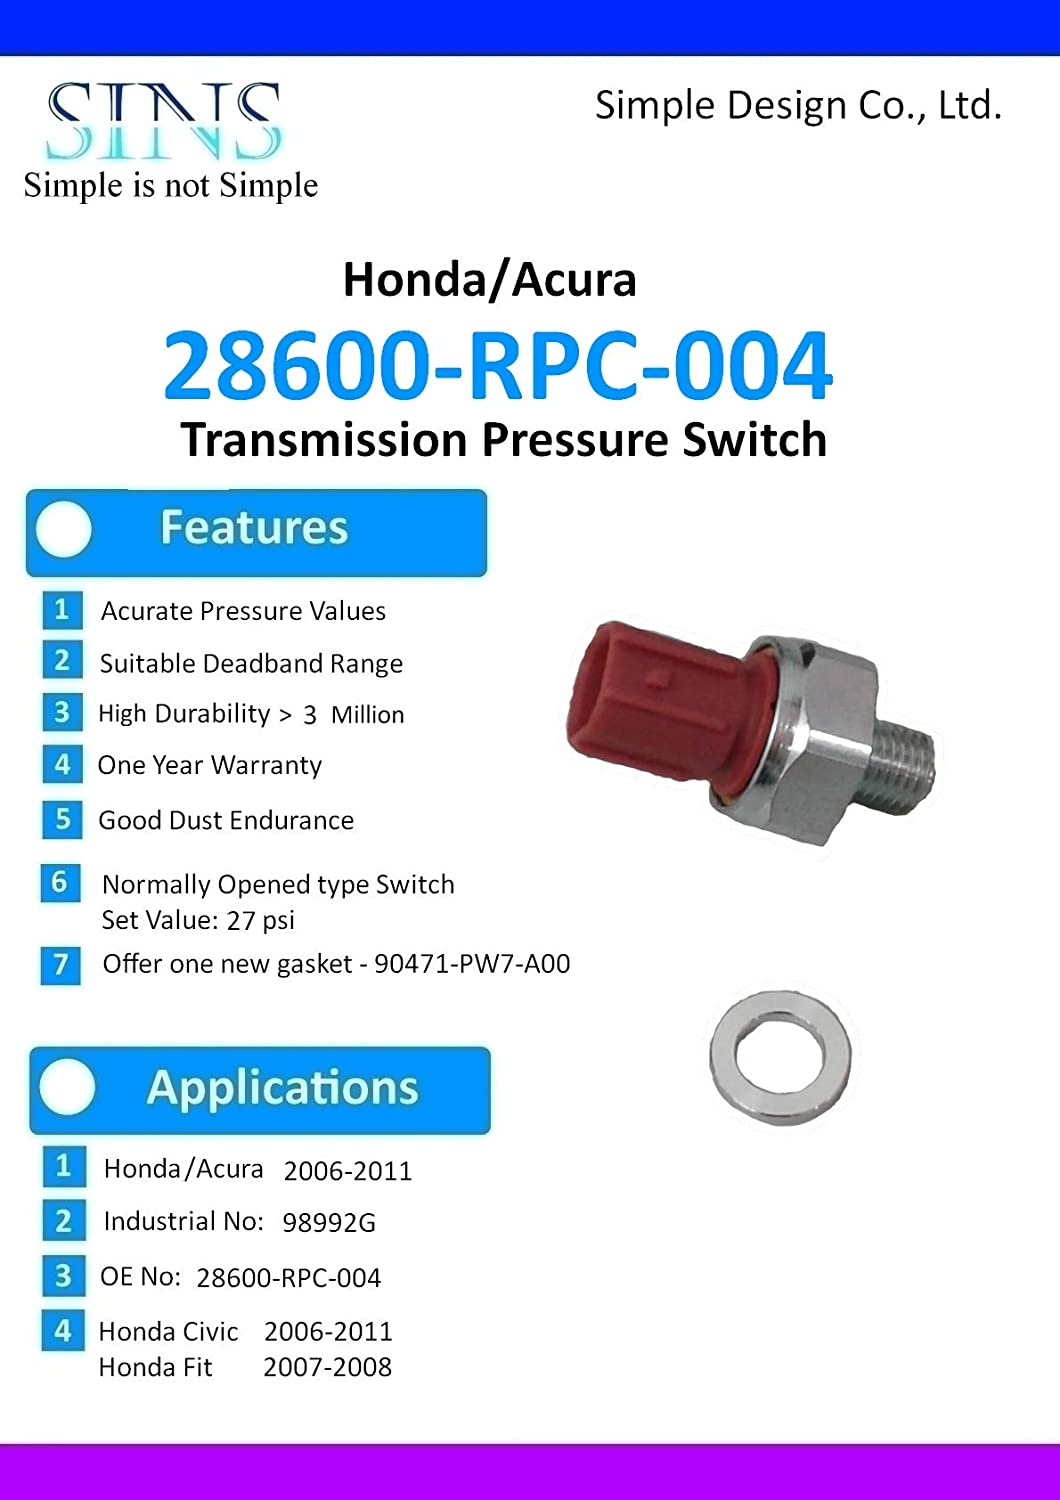 SINS Civic Fit Transmission Pressure Switch 28600-RPC-004